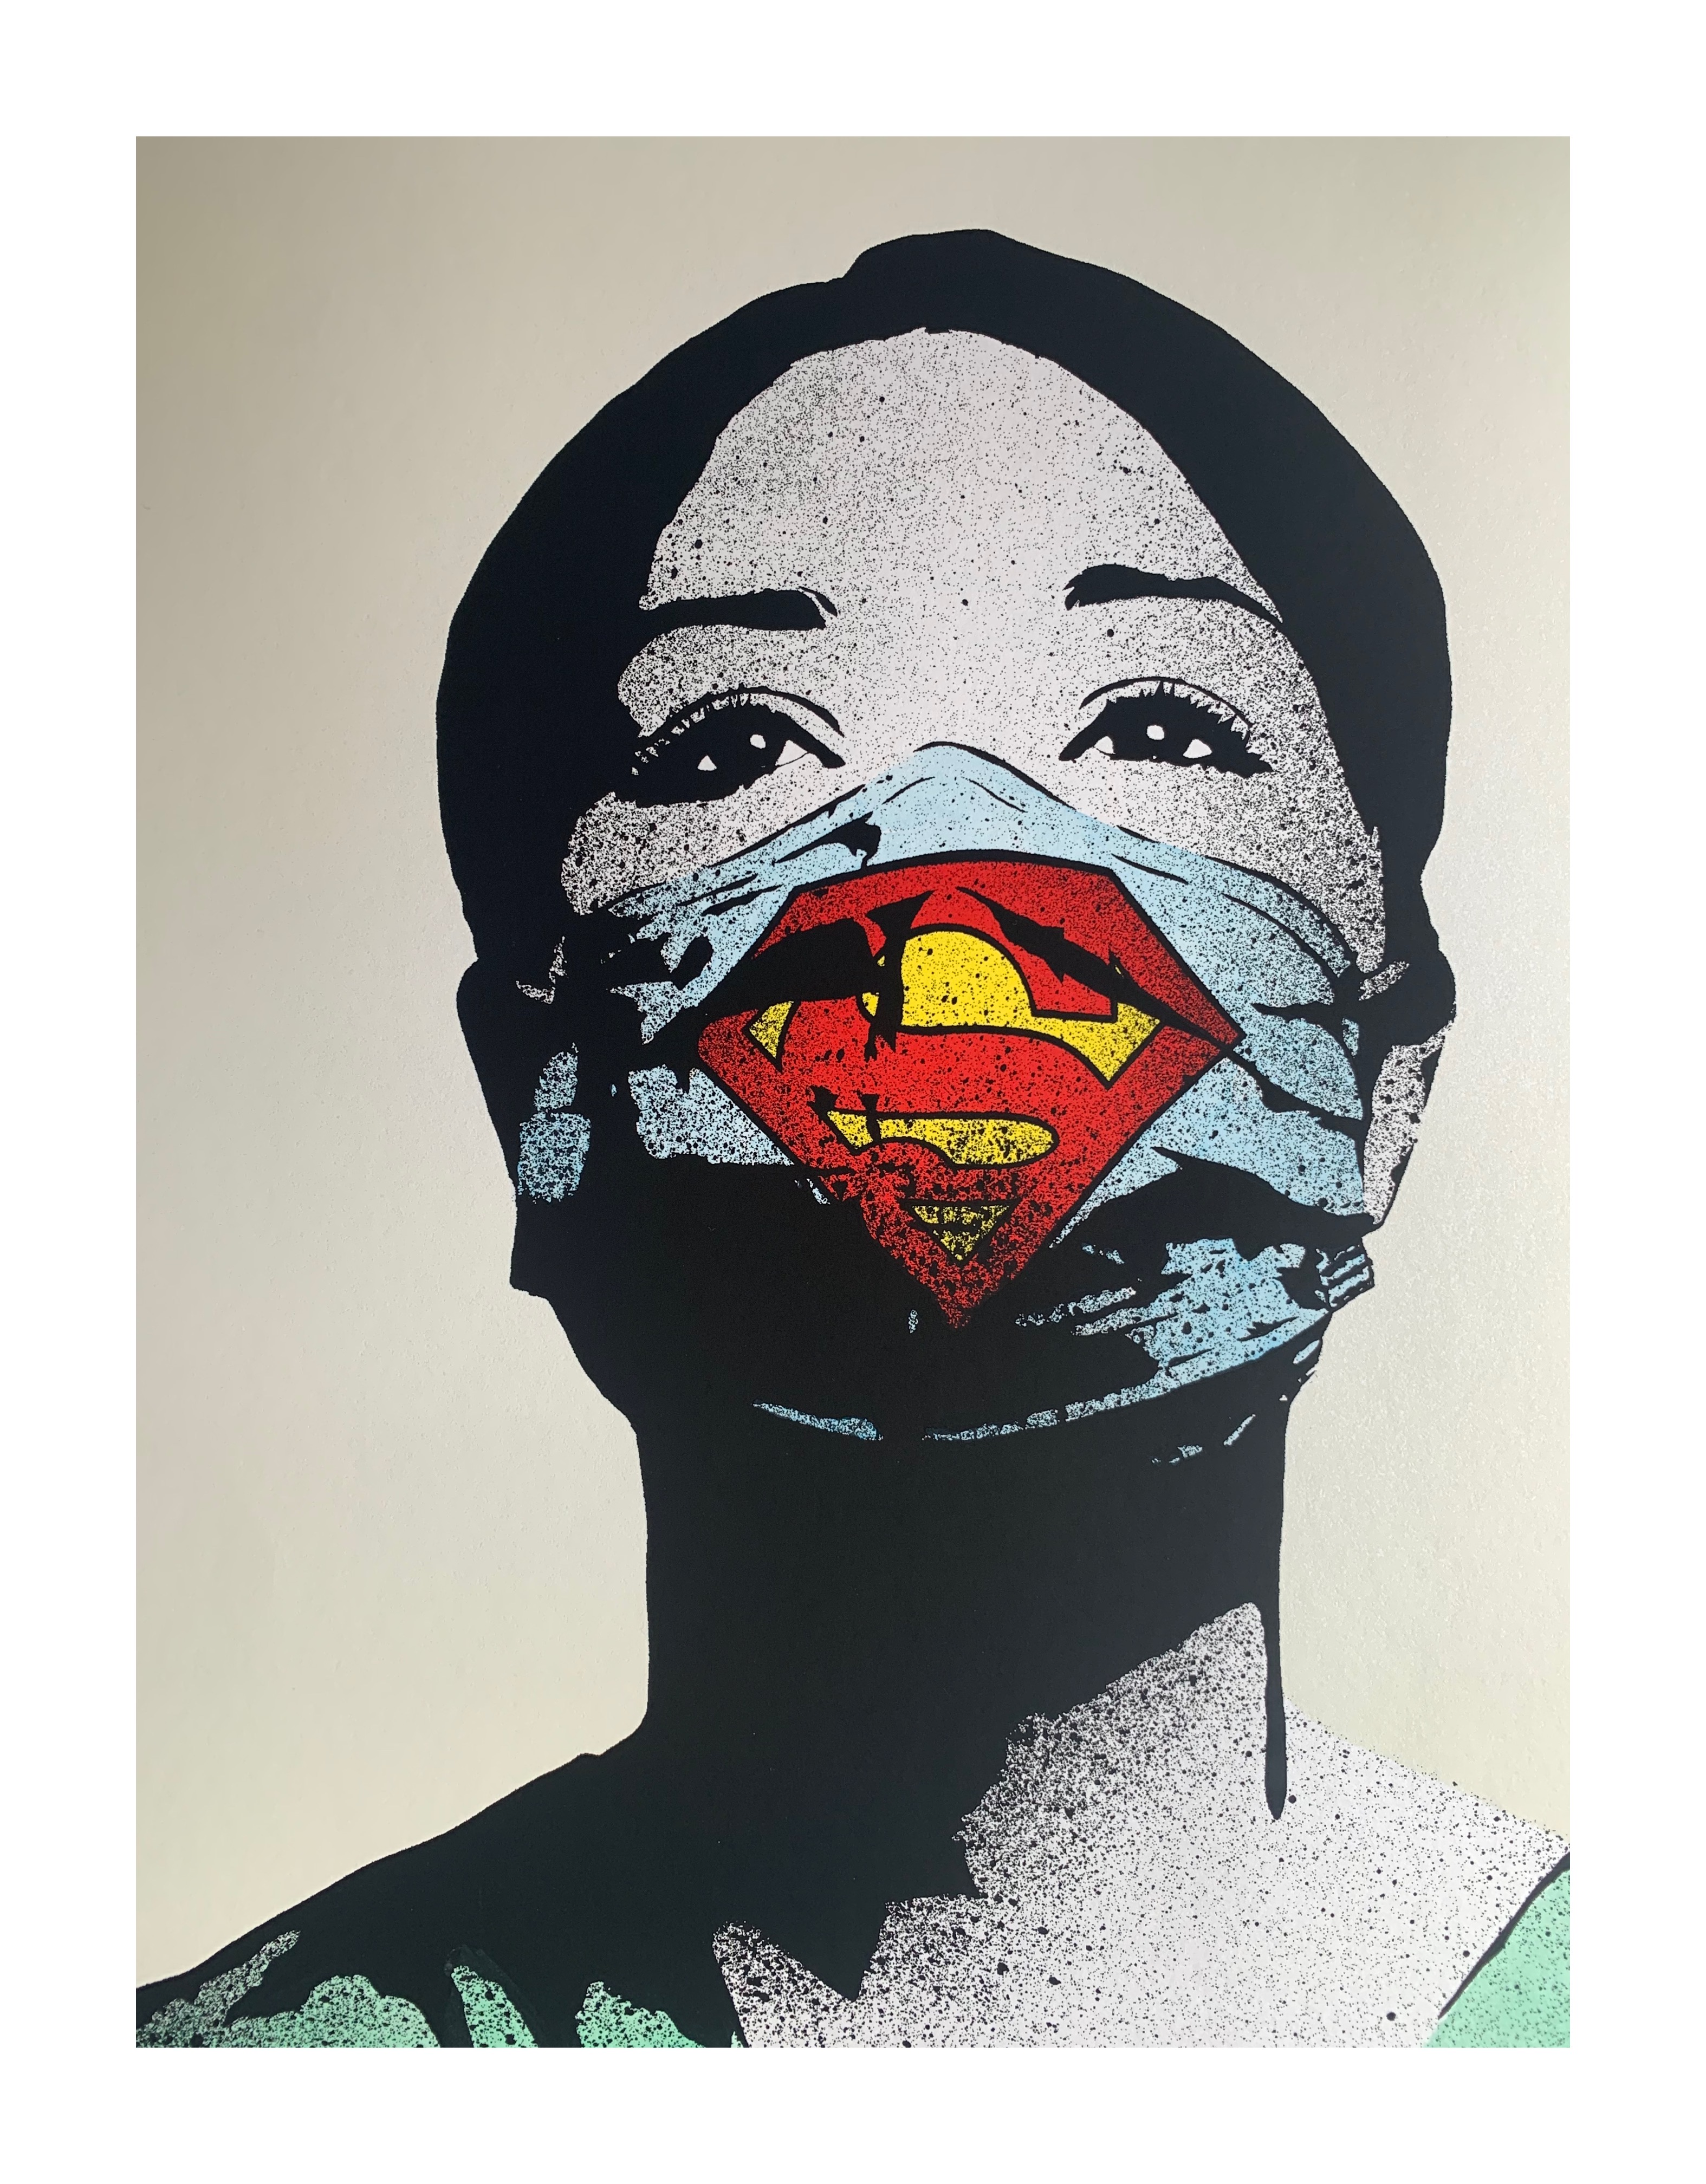 FAKE 'SUPER NURSE' (NUMBER ERROR, THEREFORE UNIQUE, FULL PROVENANCE FROM ARTIST ) - Image 5 of 9